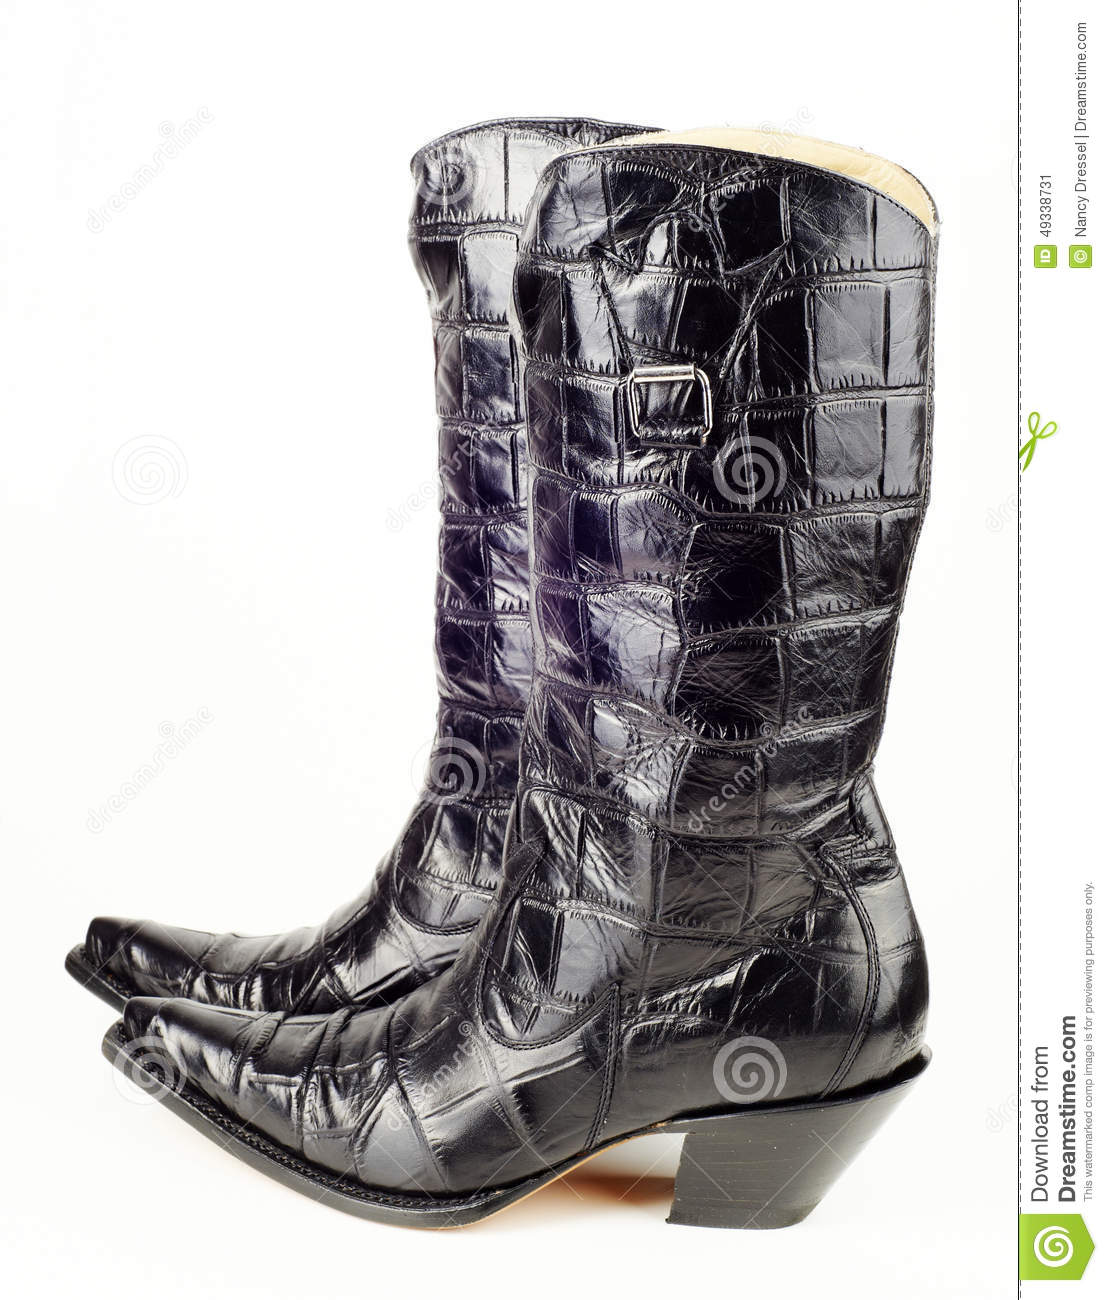 eb5b1a77ec7 A new pair of black cowboy western boots with crocodile leather for women.  Image taken in studio isolated on white background.